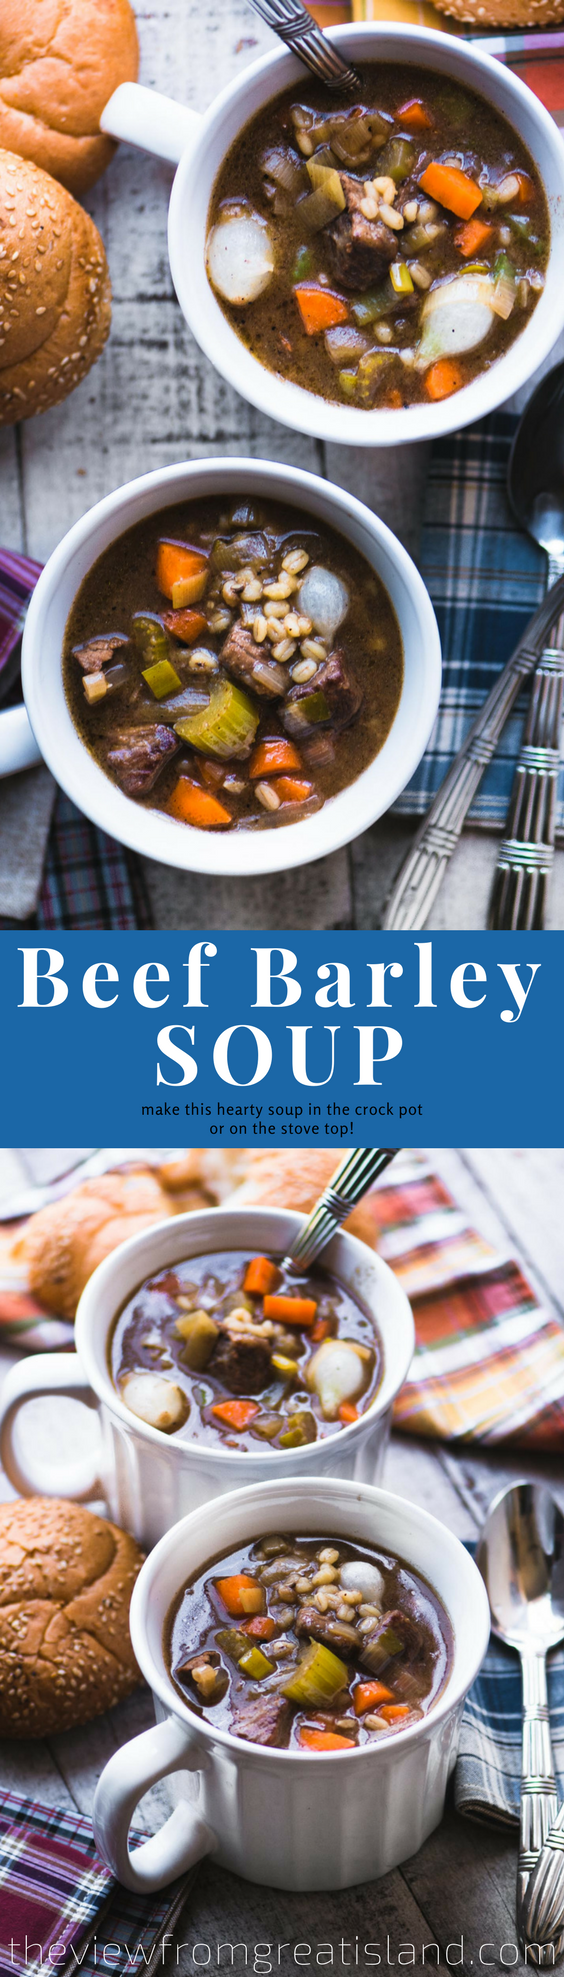 Beef Barley Soup ~ put another log on the fire and cozy up with a steaming mug of this classic comforting soup. You can simmer it on the stove, or let the slow cooker do the work. #soup #beef #comfortfood #beefsoup #beefstew #barley #onepotmeal #crockpotsoup #slowcookersoup #bestbeefbarleysoup #fallsoup #wintersoup #maincourse